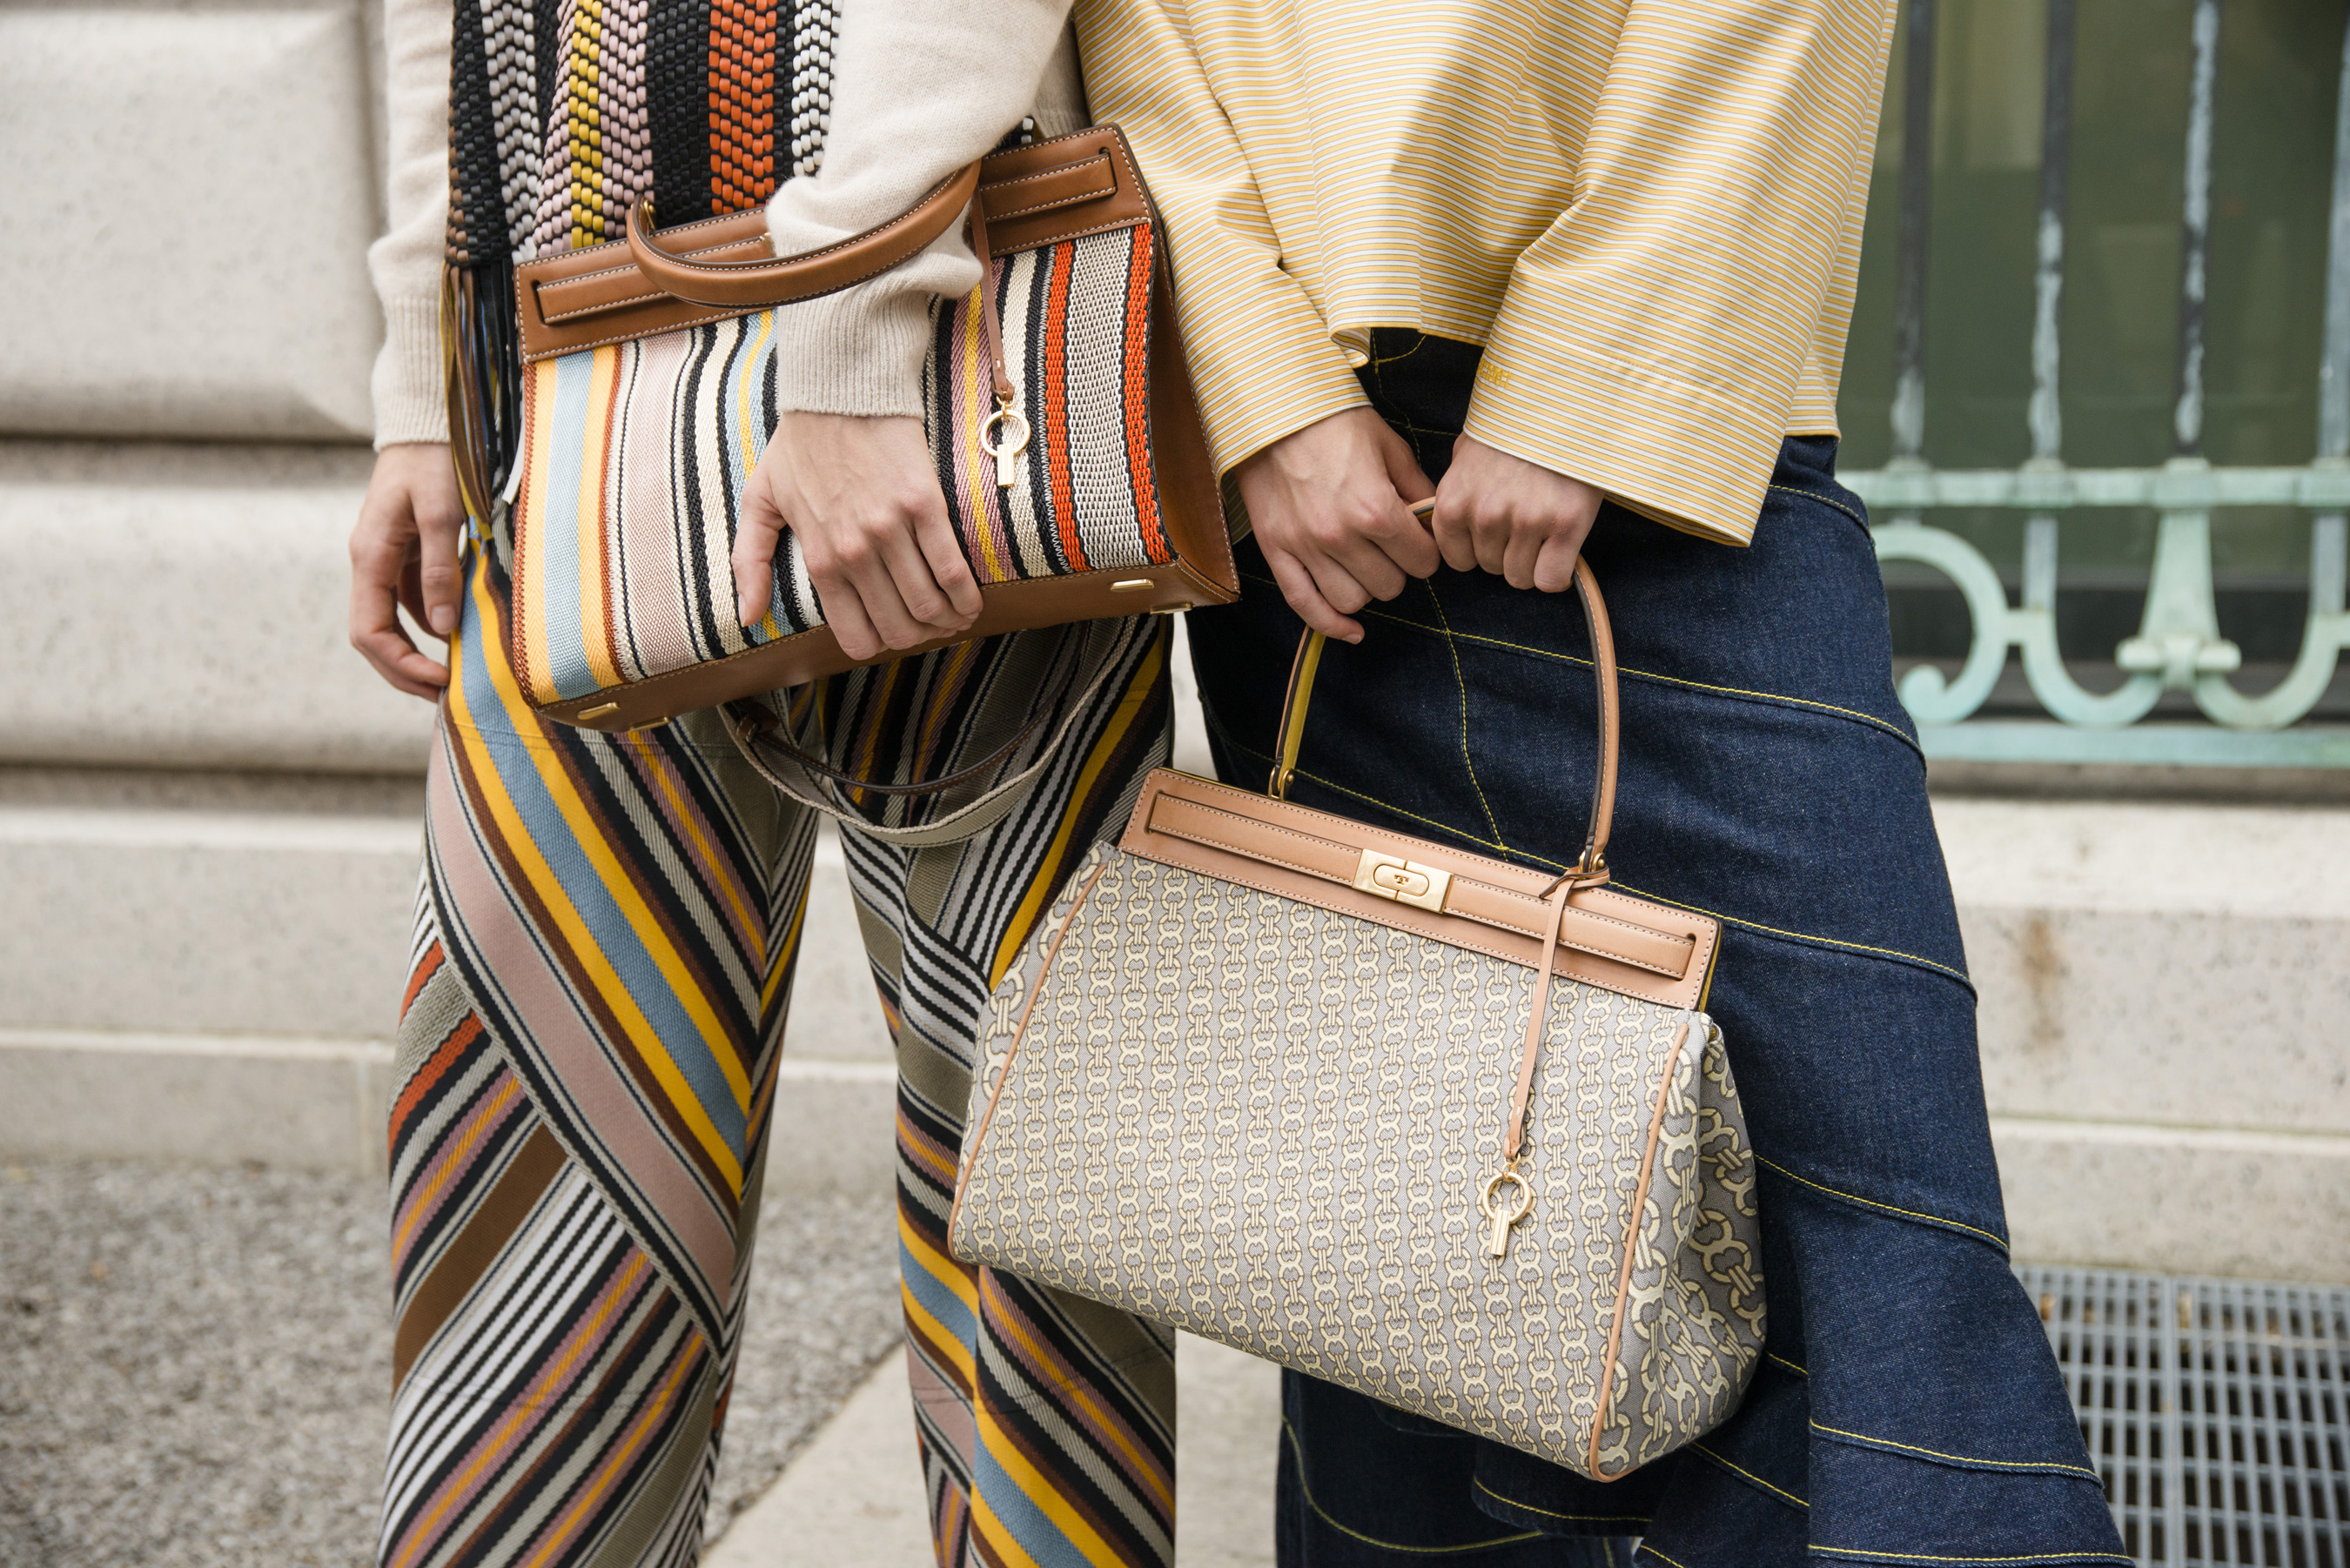 6991b5ea4325 Tory Burch Spring 2019 Fashion Show Backstage Details - The Impression